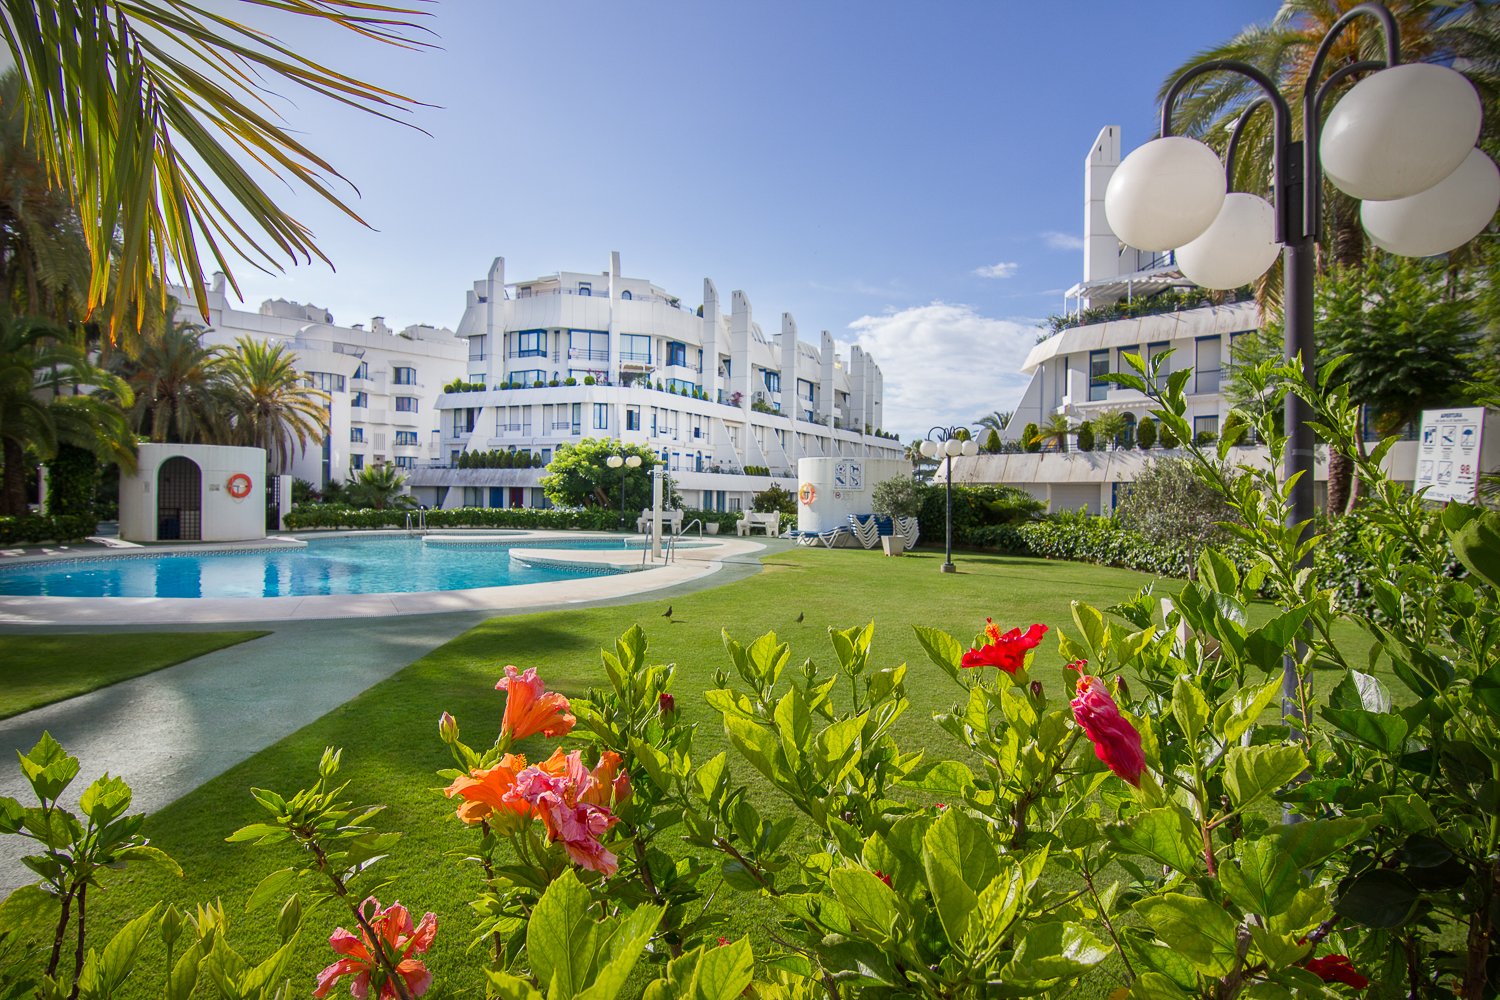 Apartment for Sale at Next to the Promenade in Marbella Town Marbella House Other Spain, Other Areas In Spain, 29600 Spain